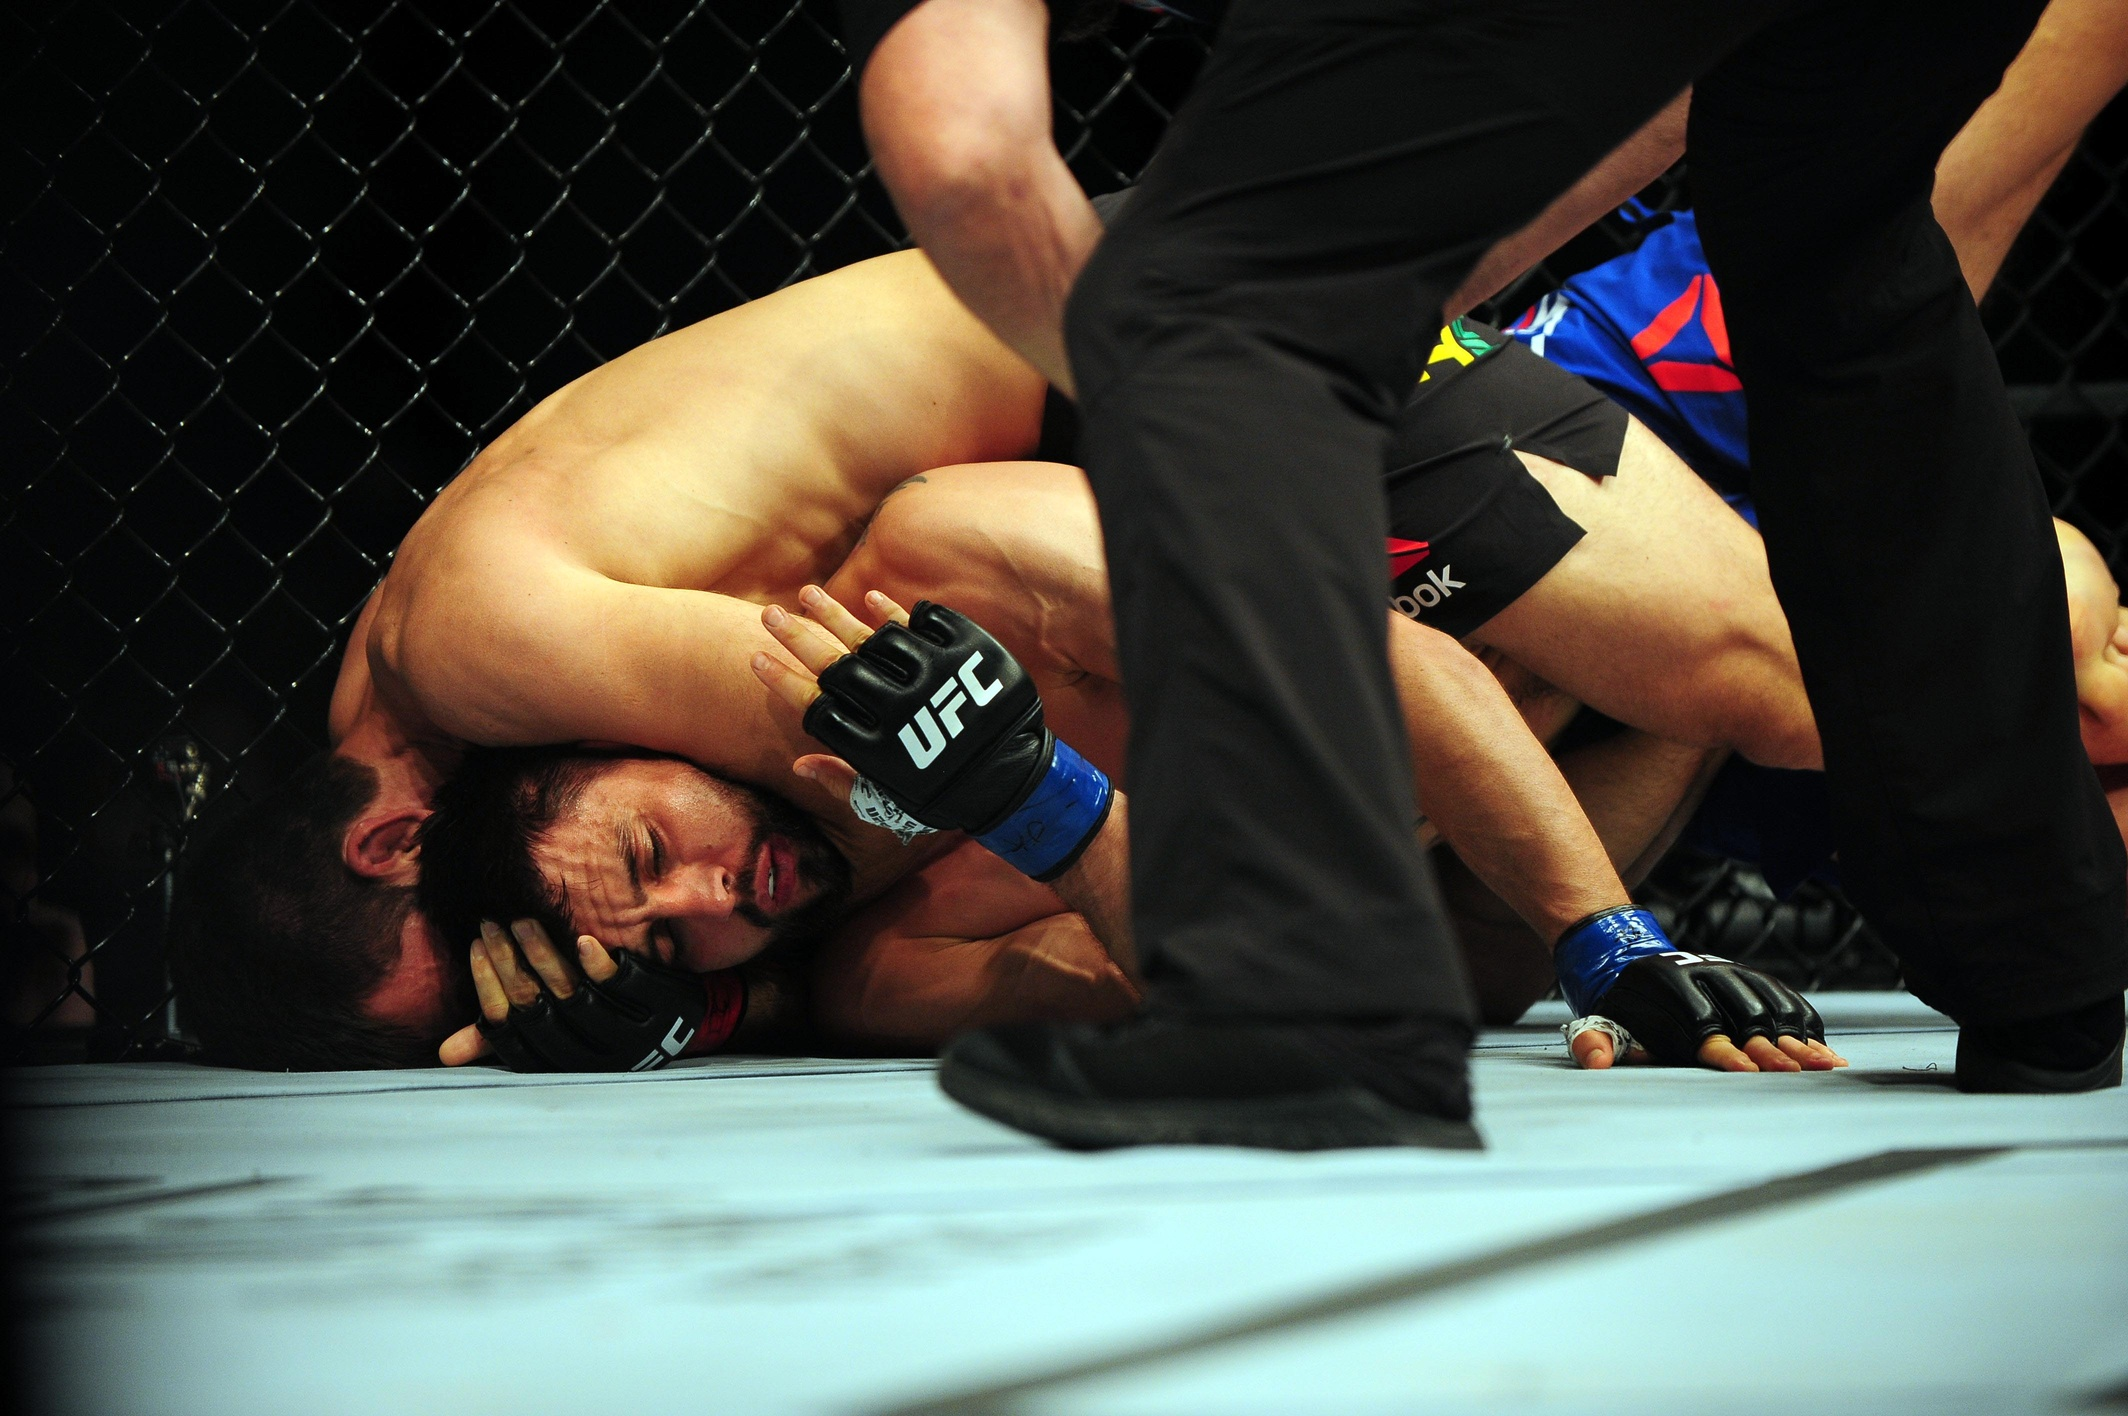 Joe Silva's shoes: What's next for Carlos Condit?